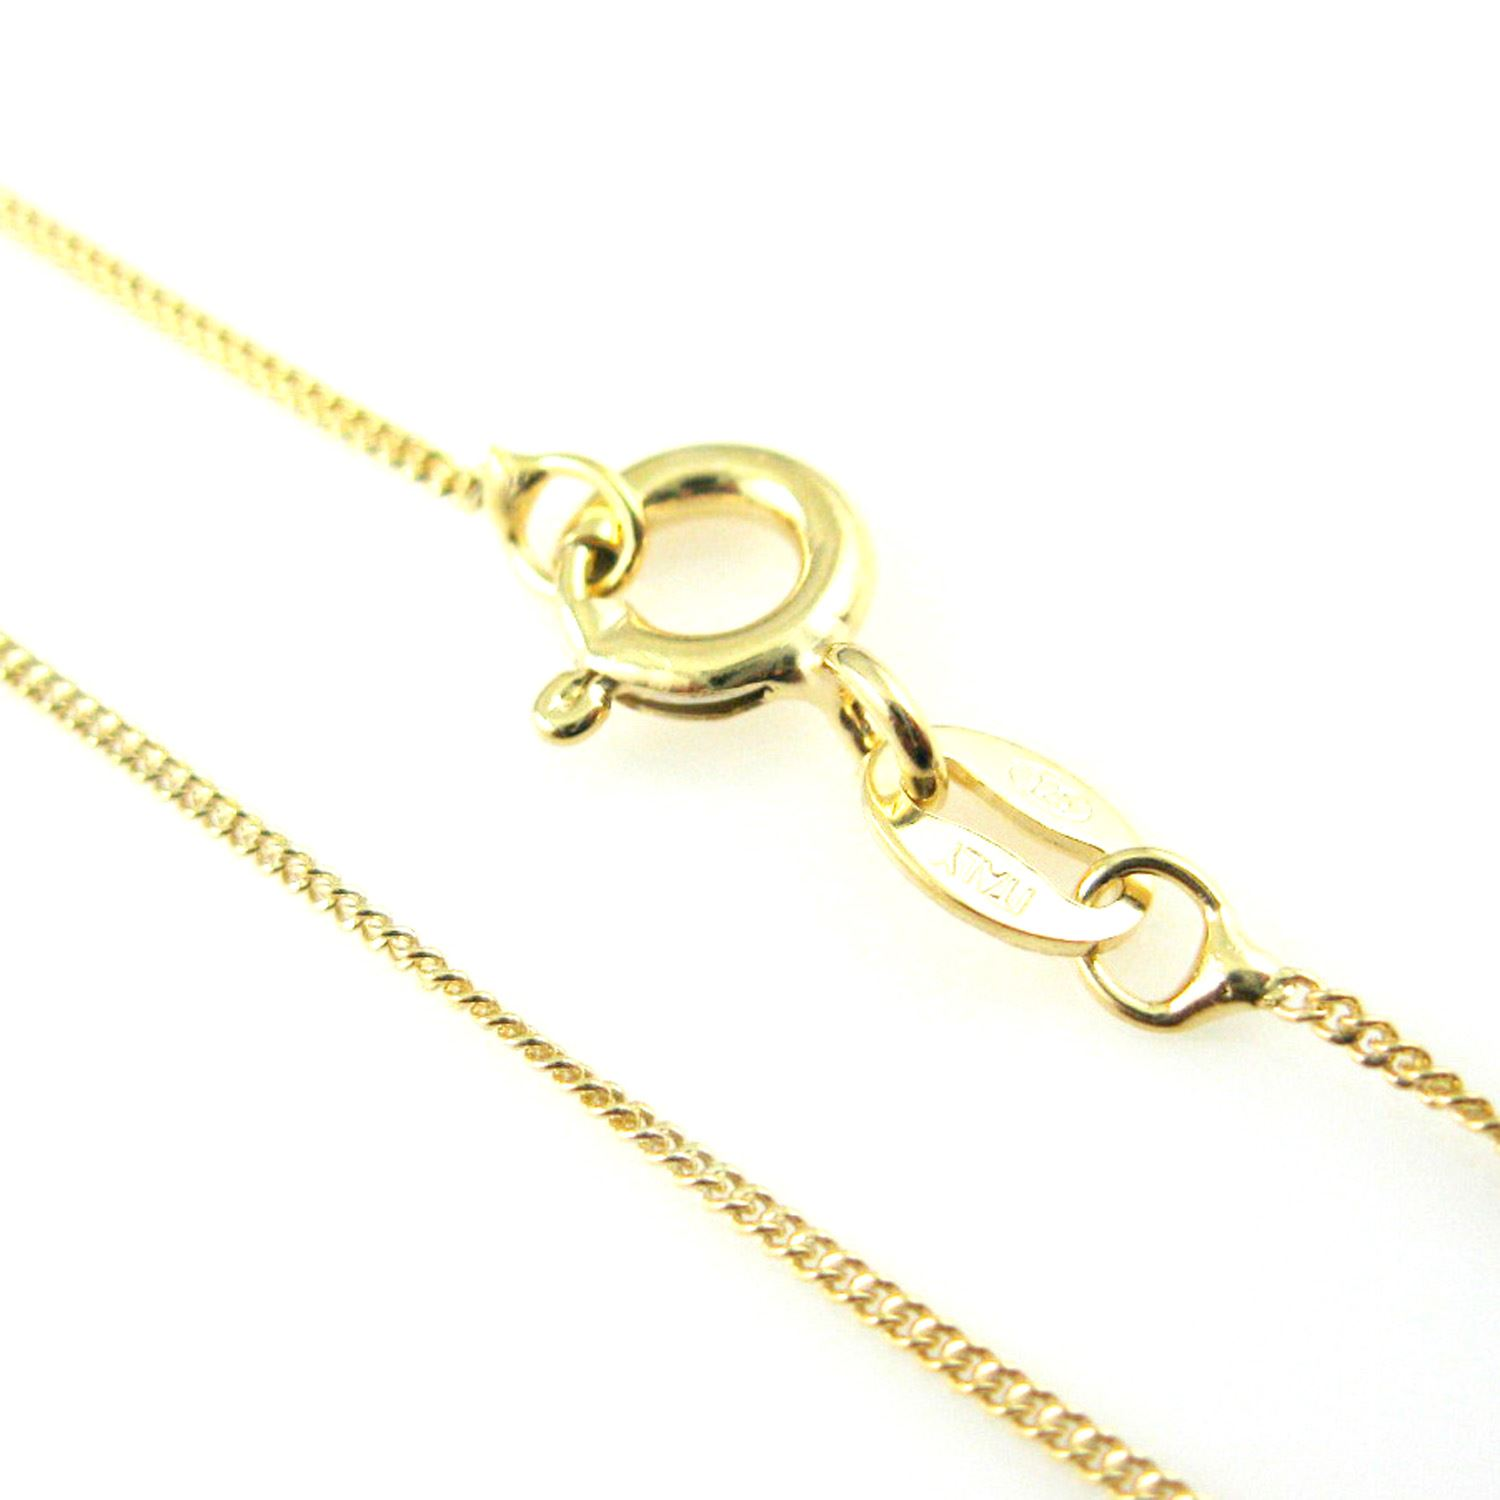 Gold Plated Necklace Chain, Vermeil Sterling Silver Necklace Chain-Bracelet, Anklet - Vermeil Chain Bulk - Tiny Curb Chain-Necklace - All Sizes